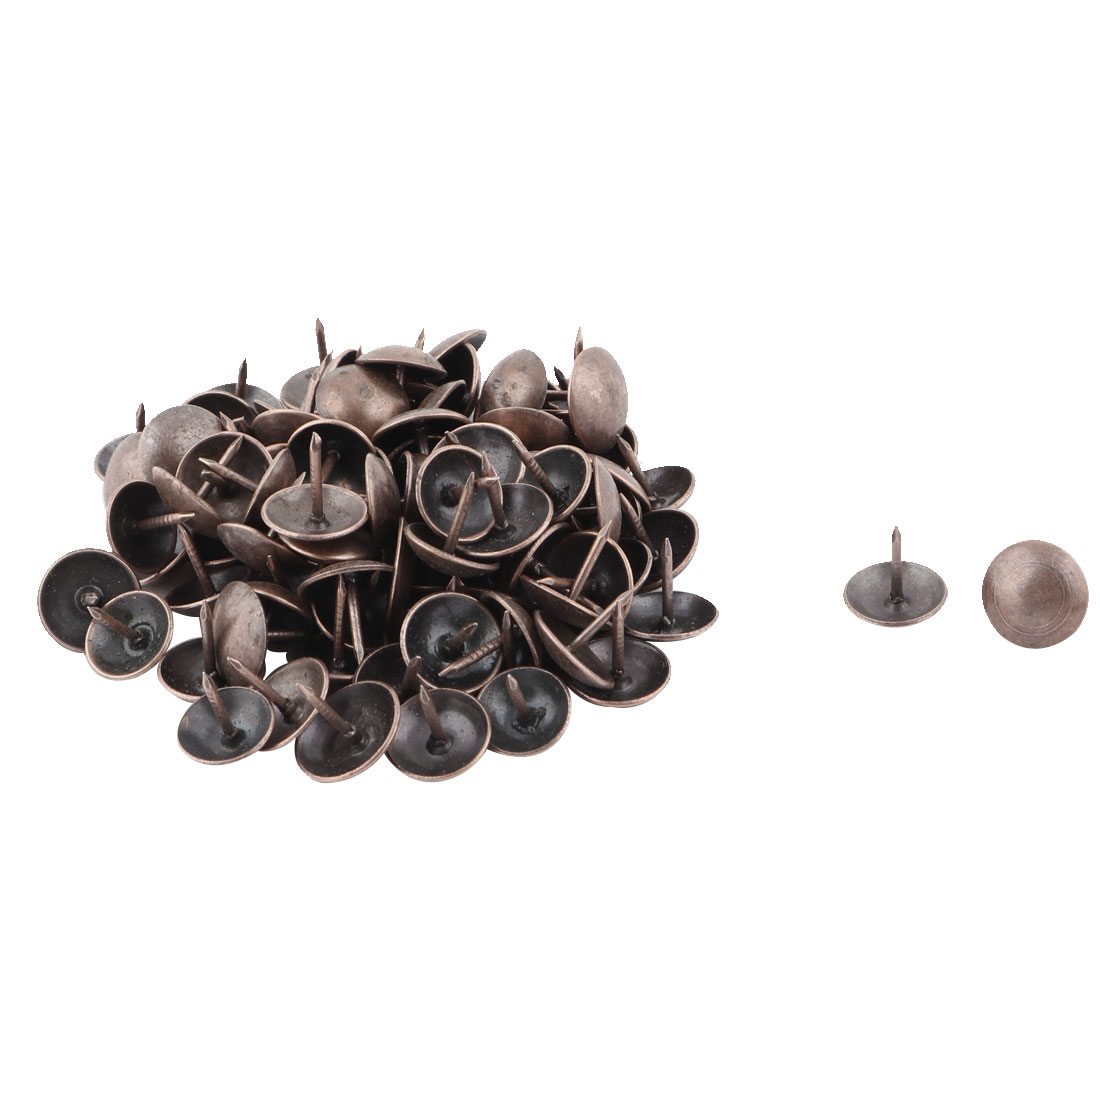 Home Furniture Metal Round Head Upholstery Thumb Tack Nail Pushpin Copper Tone 11 x 11mm 98pcs